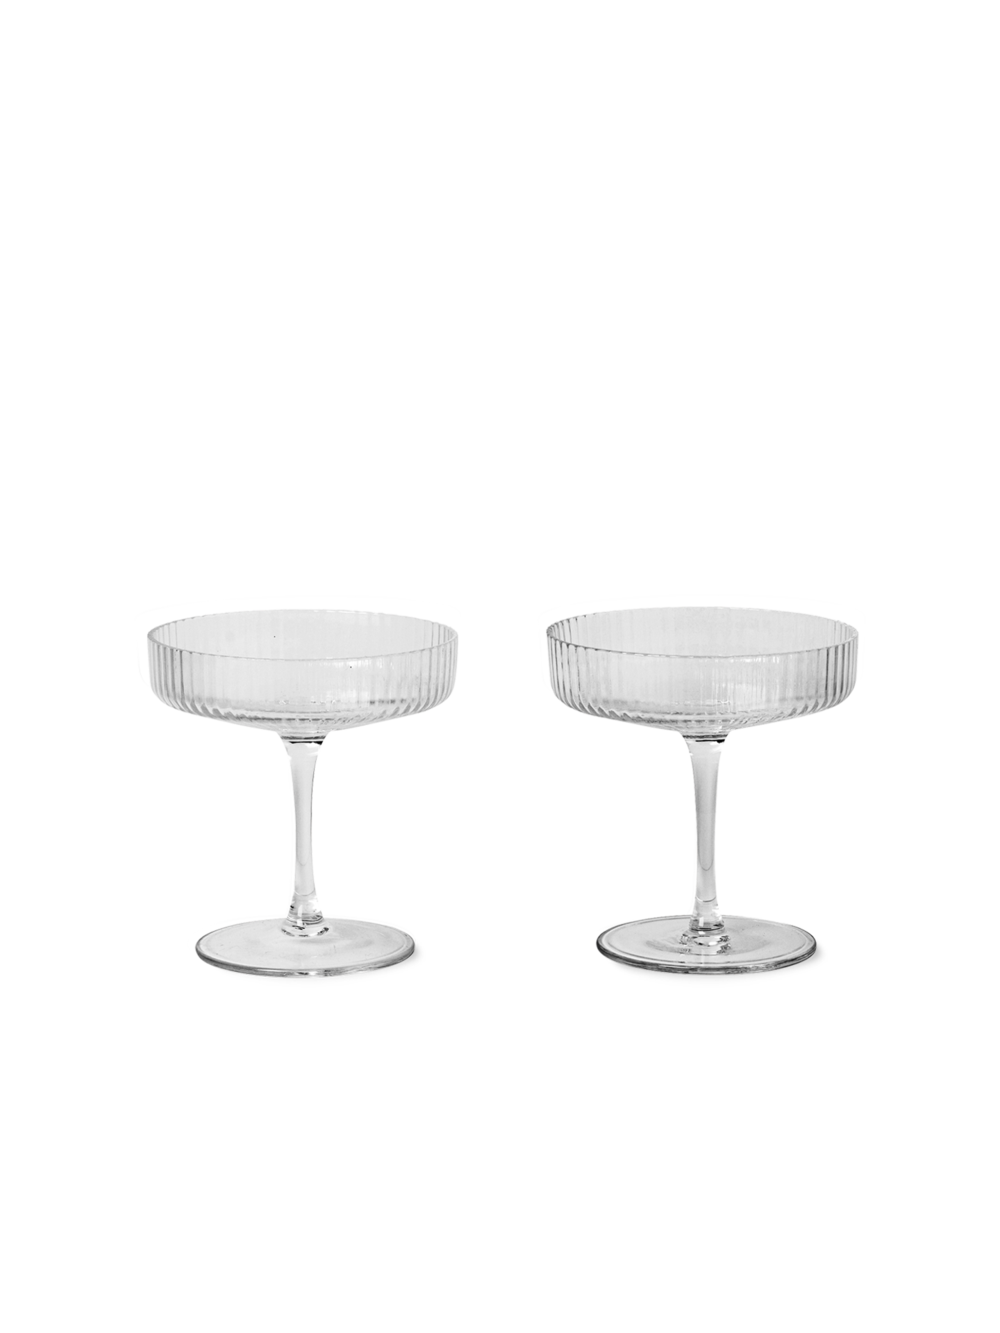 Ripple champagne glasses set 2 clear